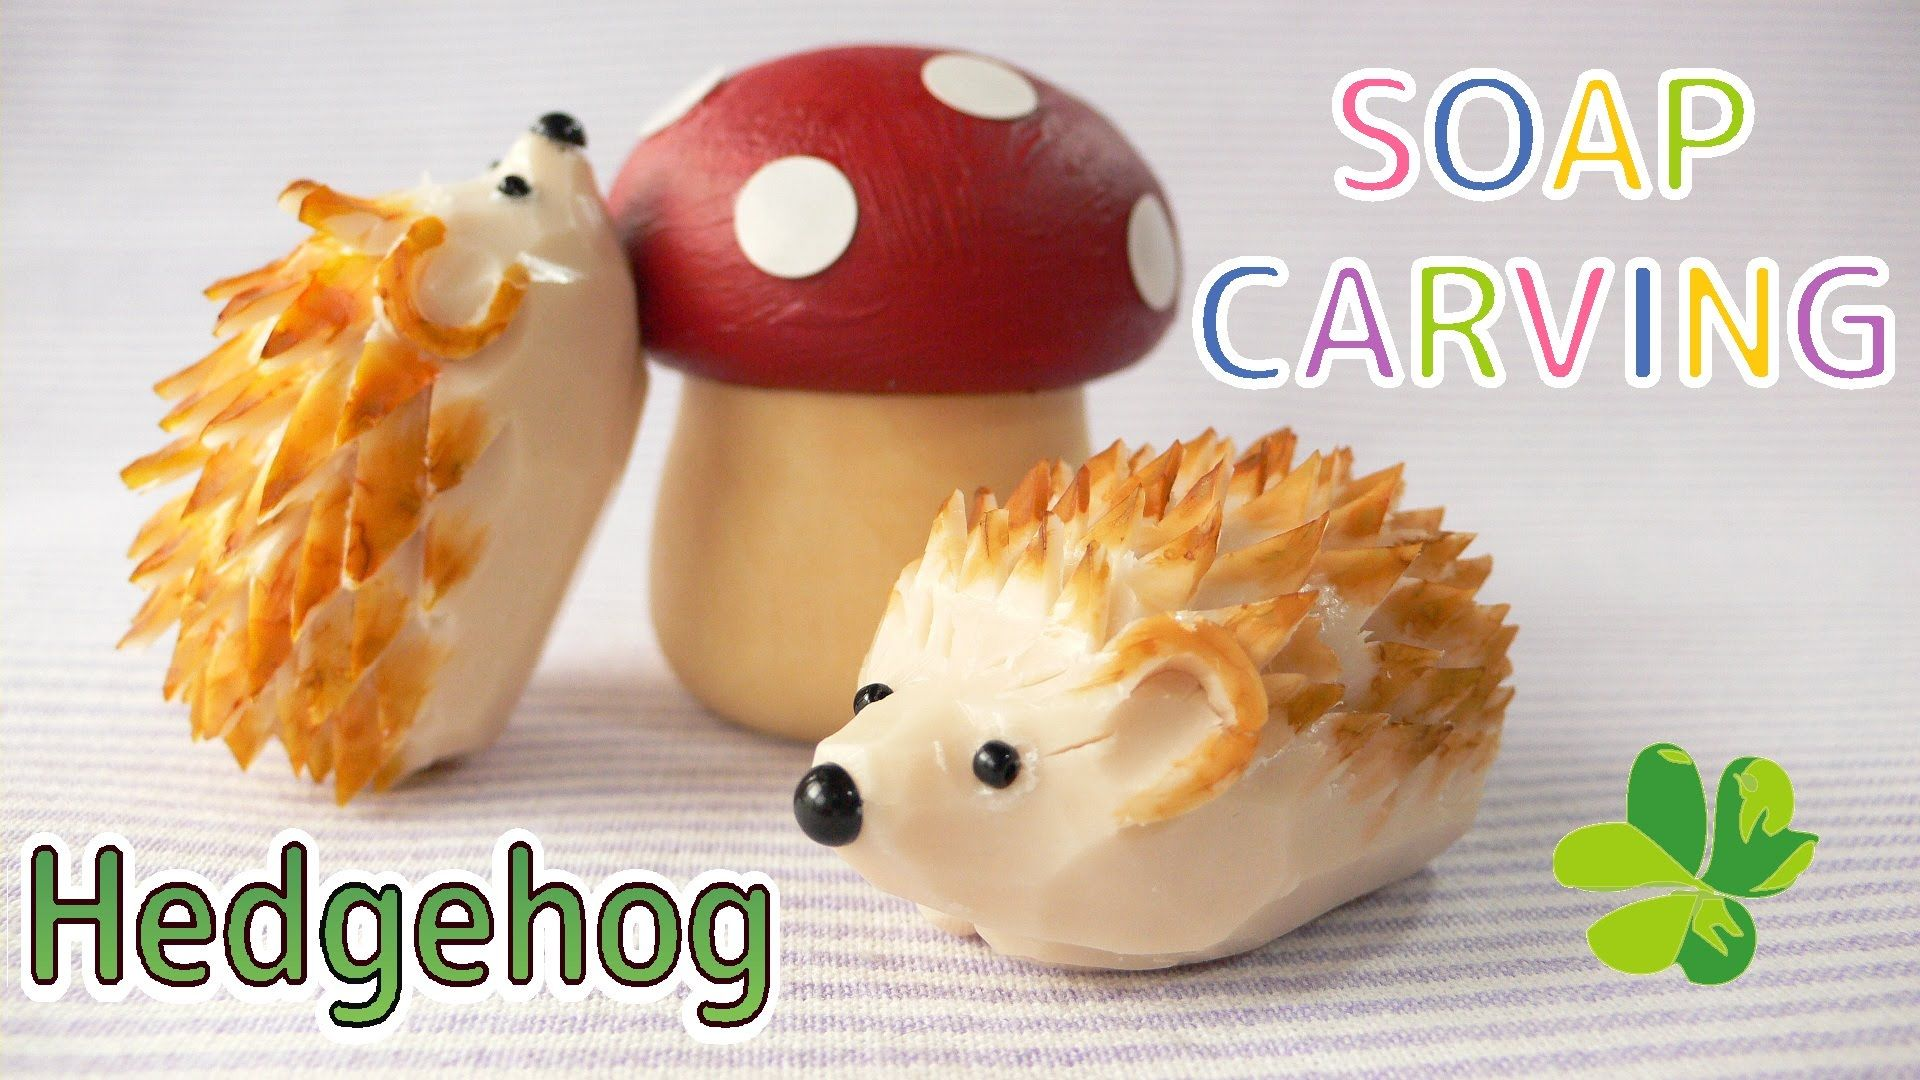 Soap carving easy hedgehog how to make soapΣαπούνι